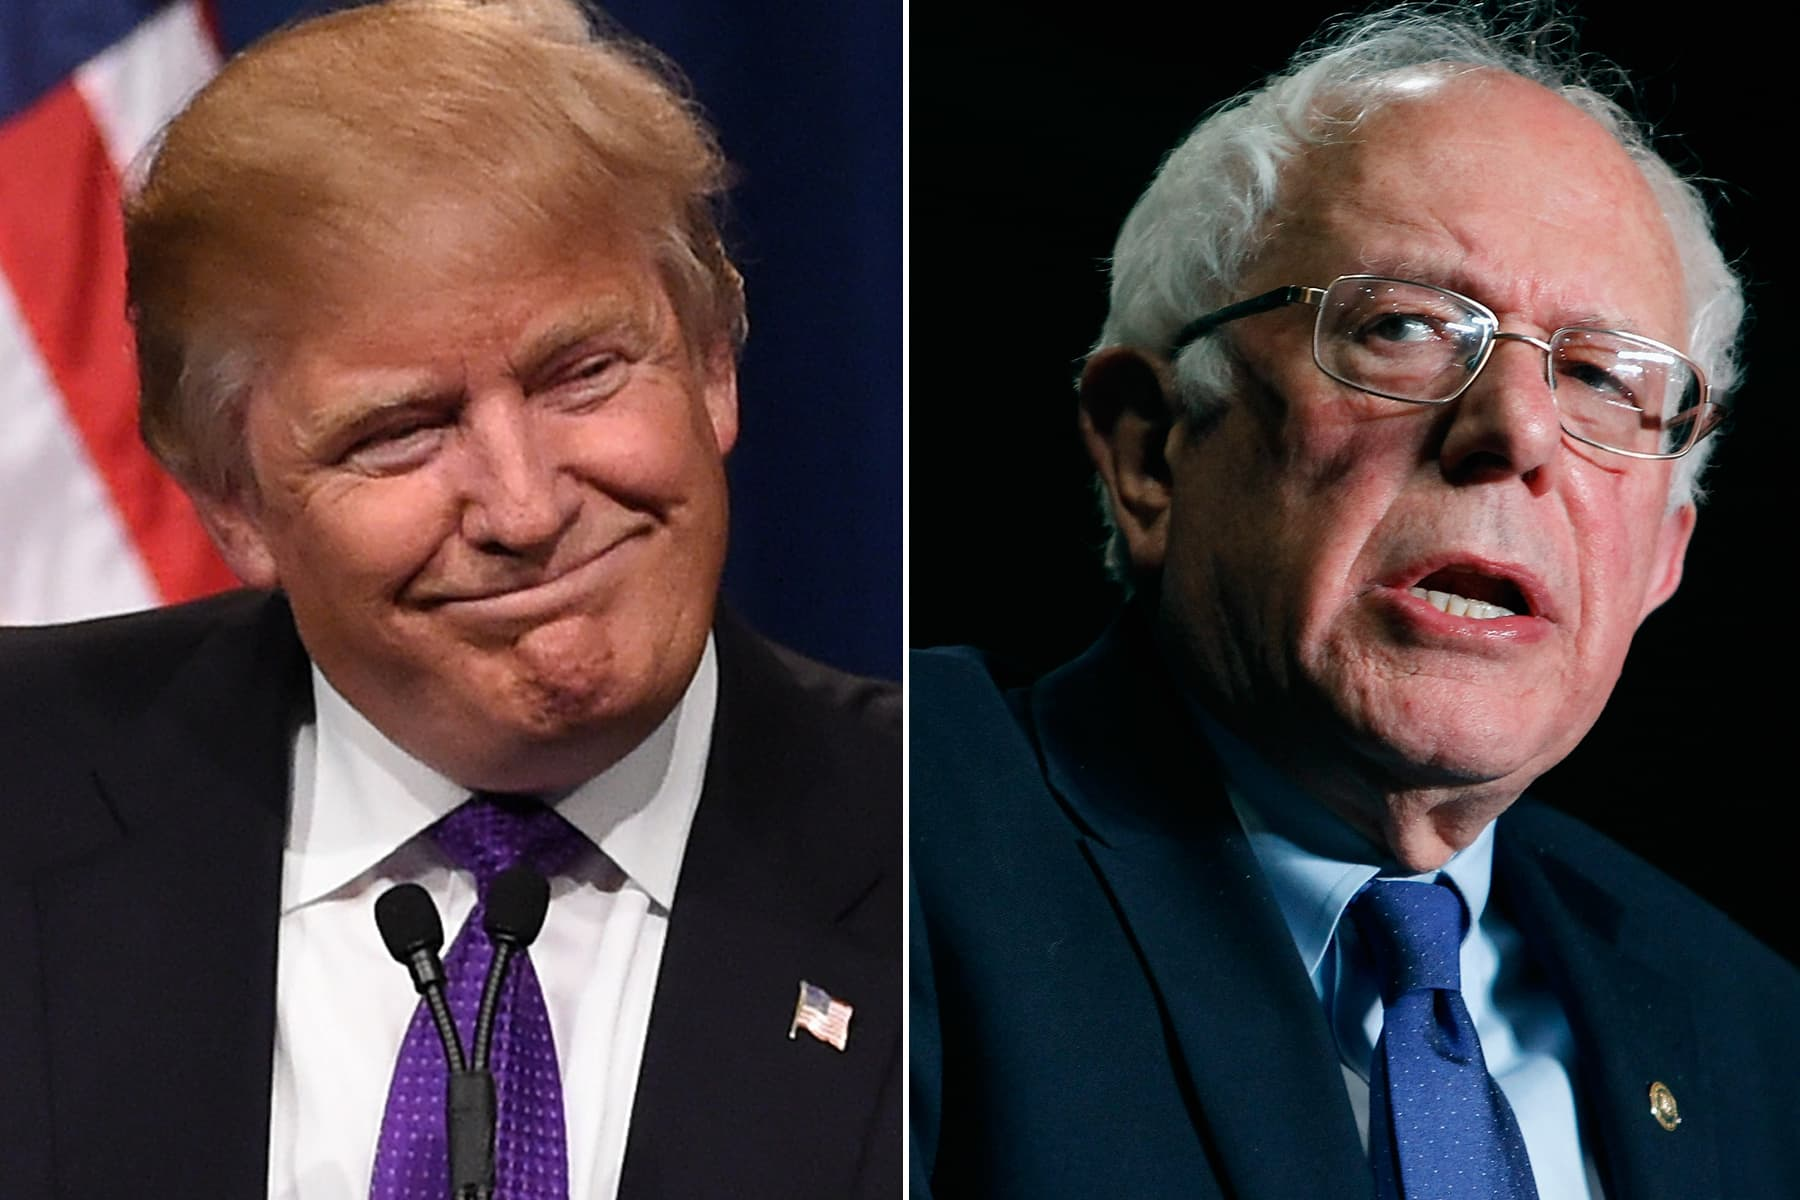 Sanders' 'very, very different' economic plan no match for Trump's, Mnuchin claims